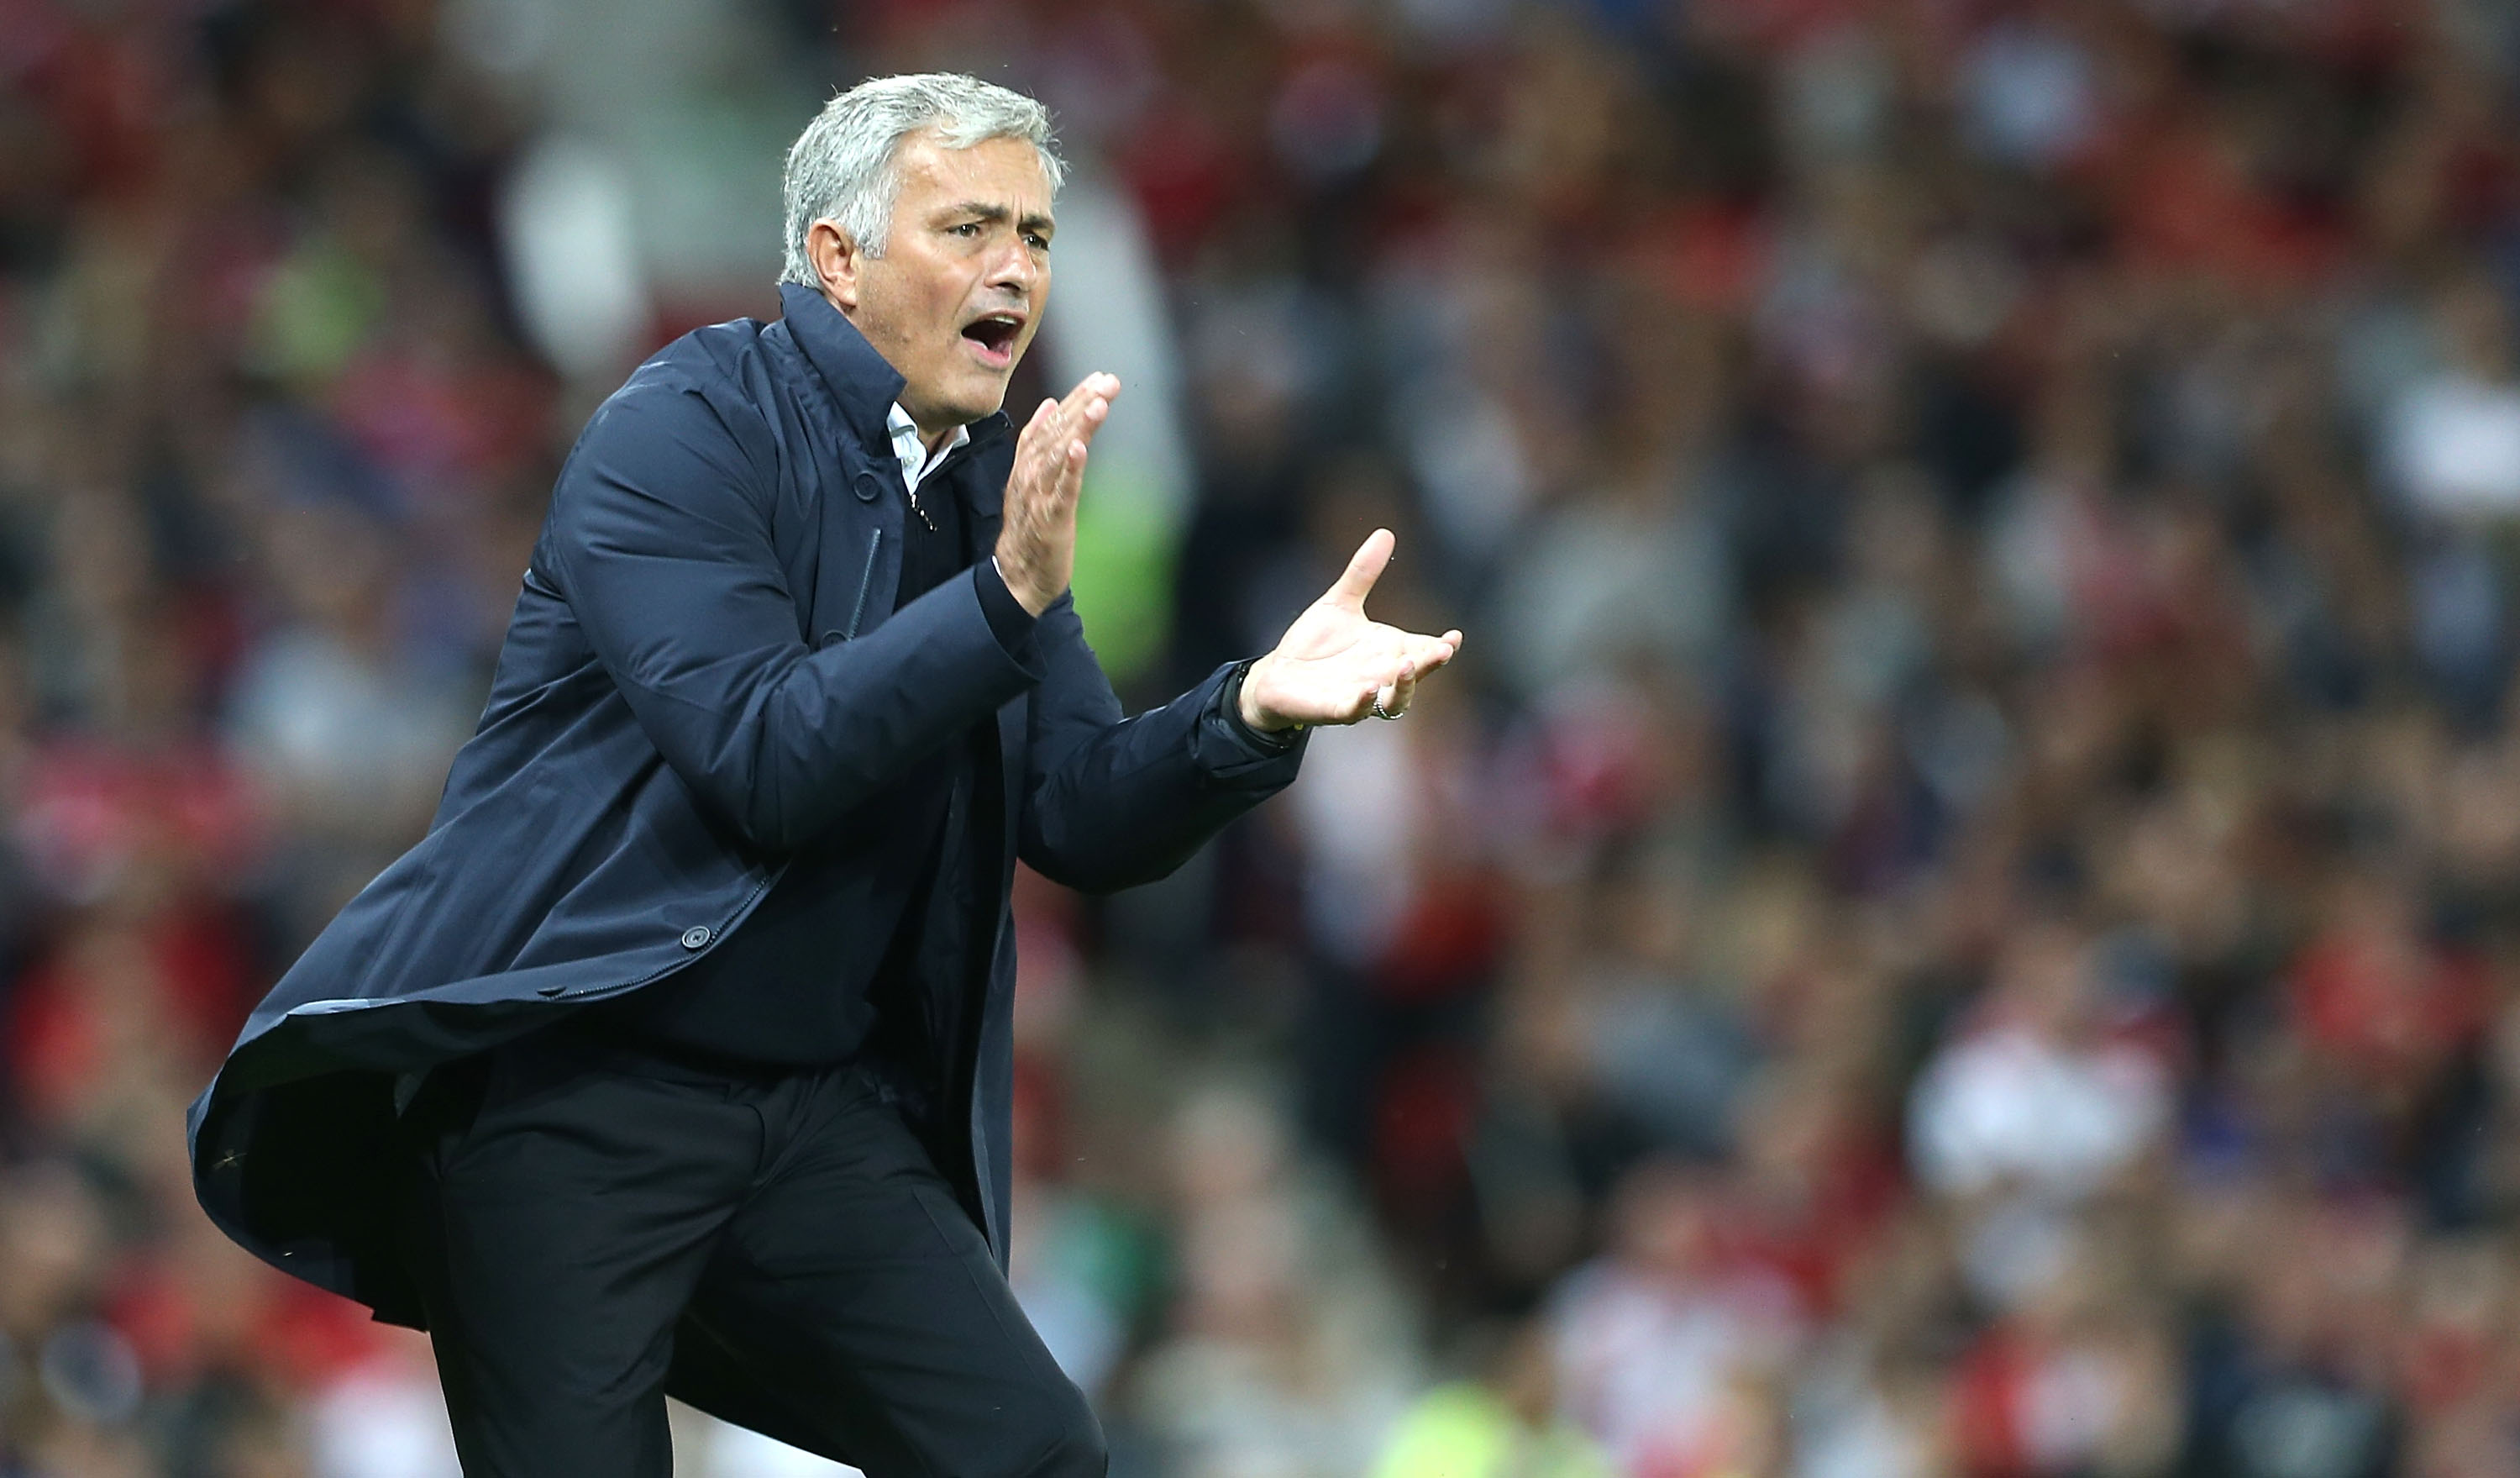 Jose Mourinho not expecting any further Manchester United transfer deals and happy to give youth a chance